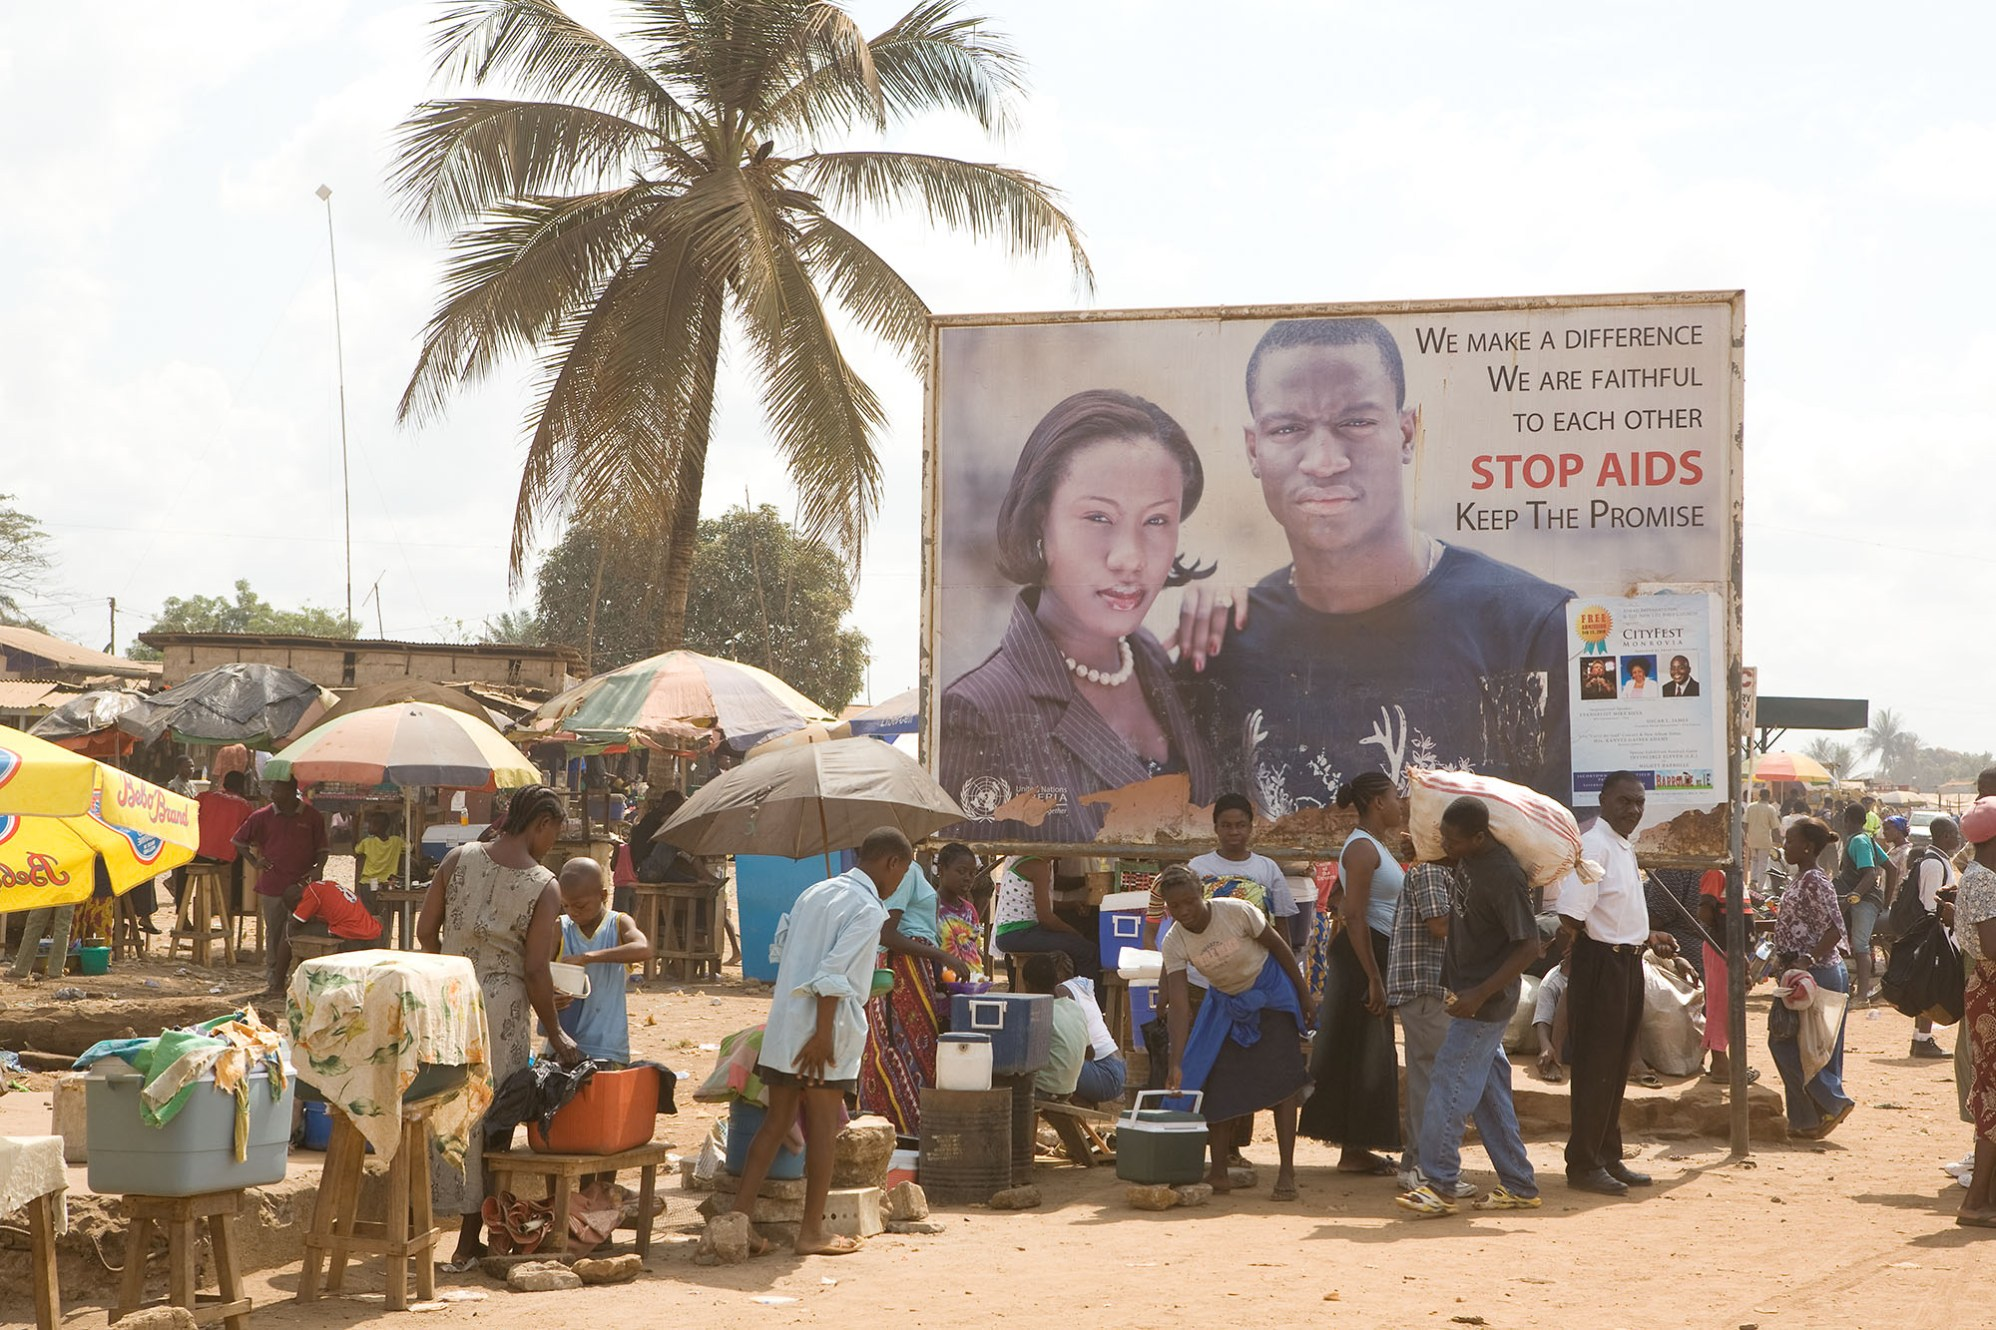 A public service advertisement warns of the risks of HIV/AIDS in Monrovia, Liberia.